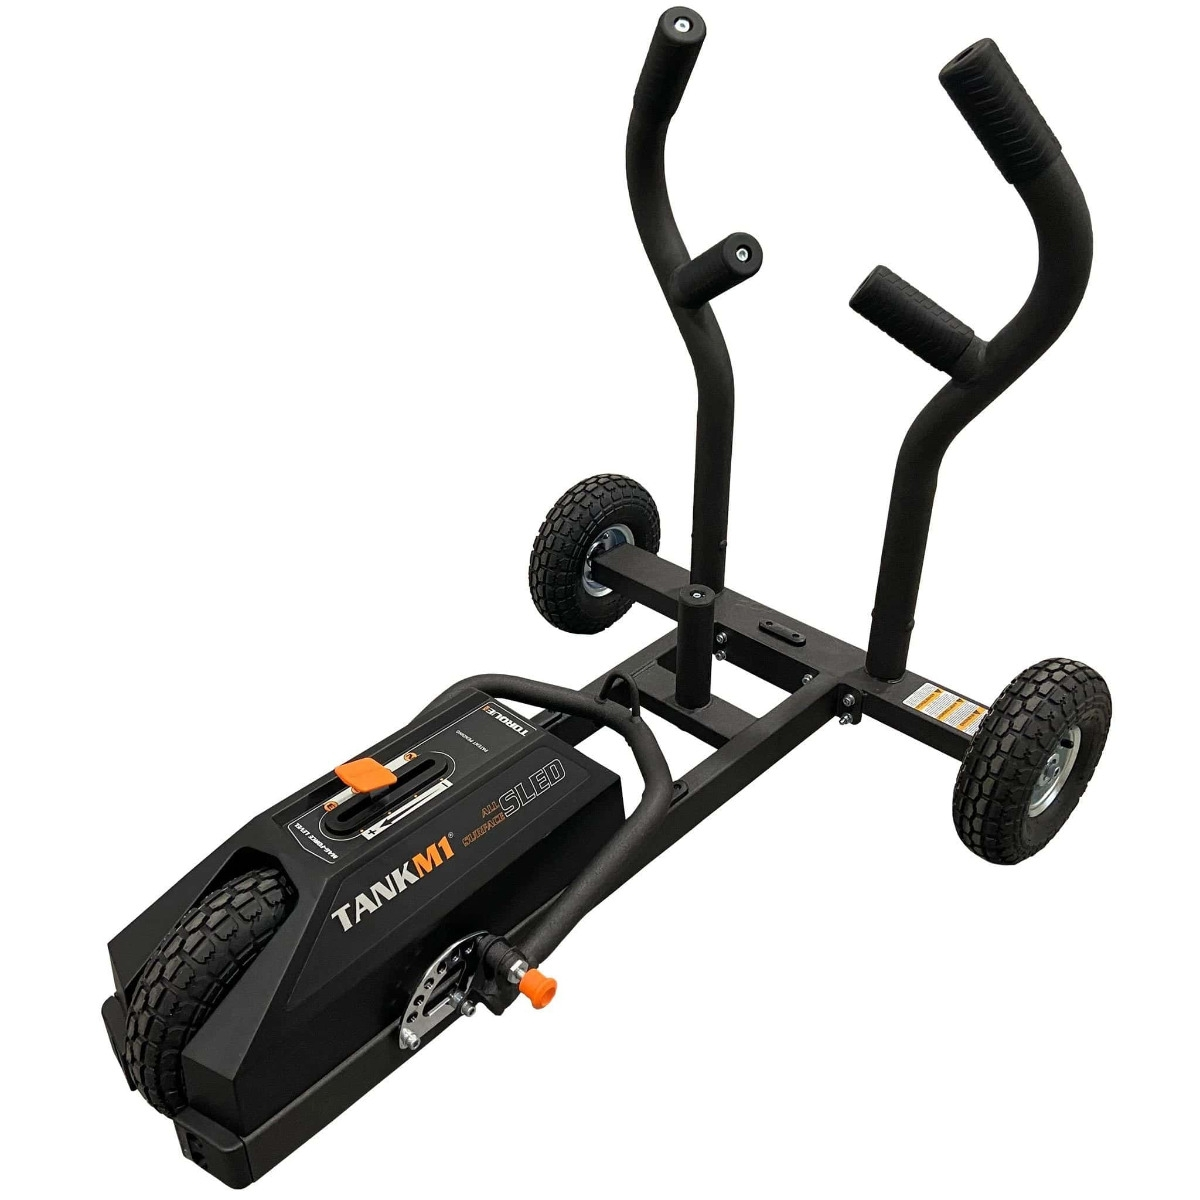 Torque TANK M1 for cardio training with a push sled.